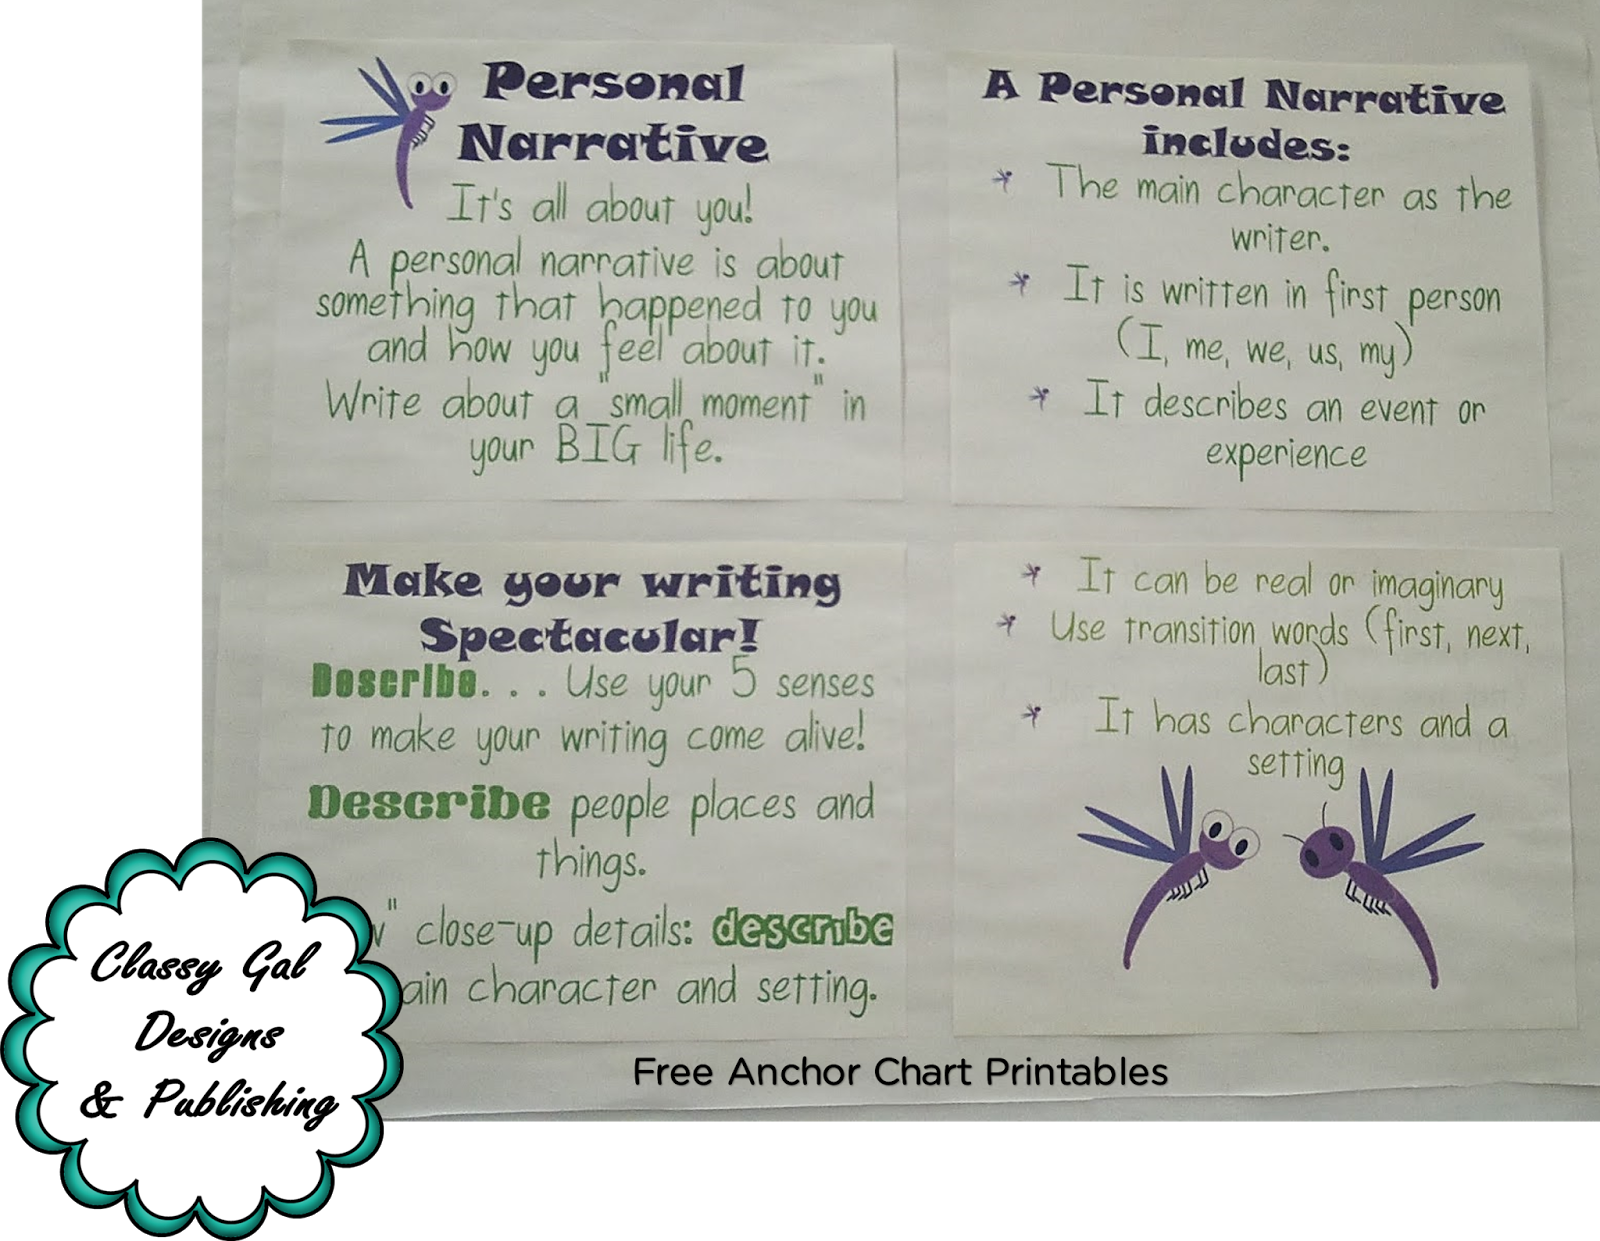 classy gal designs and publishing: downloadable personal narrative